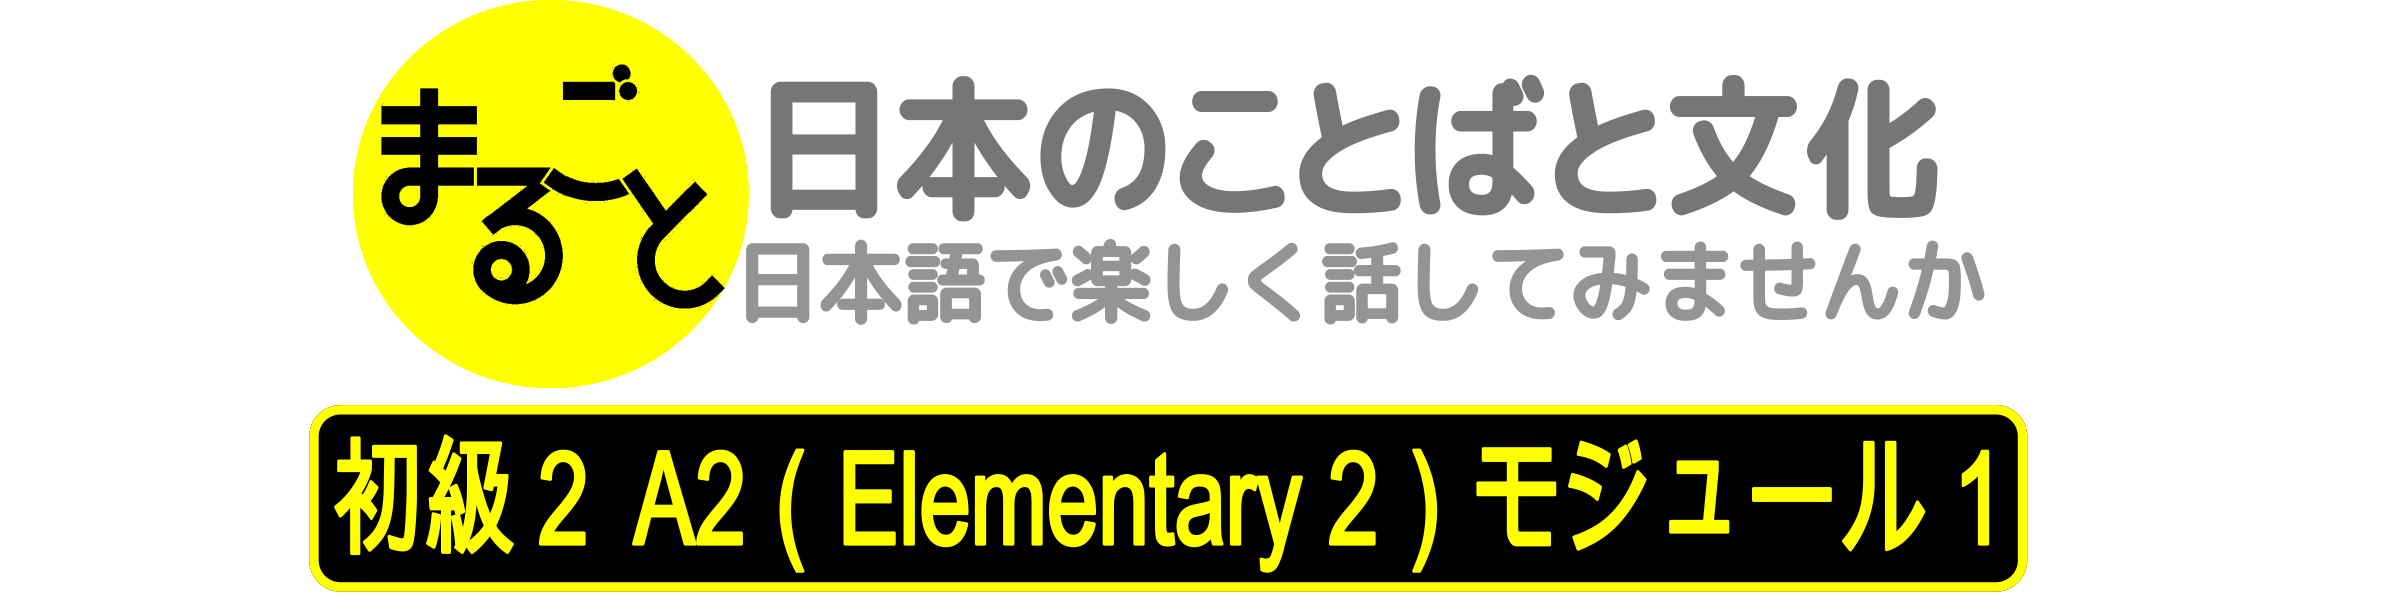 MARUGOTO Conversational Japanese for Everyone Elementary 2 A2 Module 1 – Application Deadline: May 3 (Fri.)